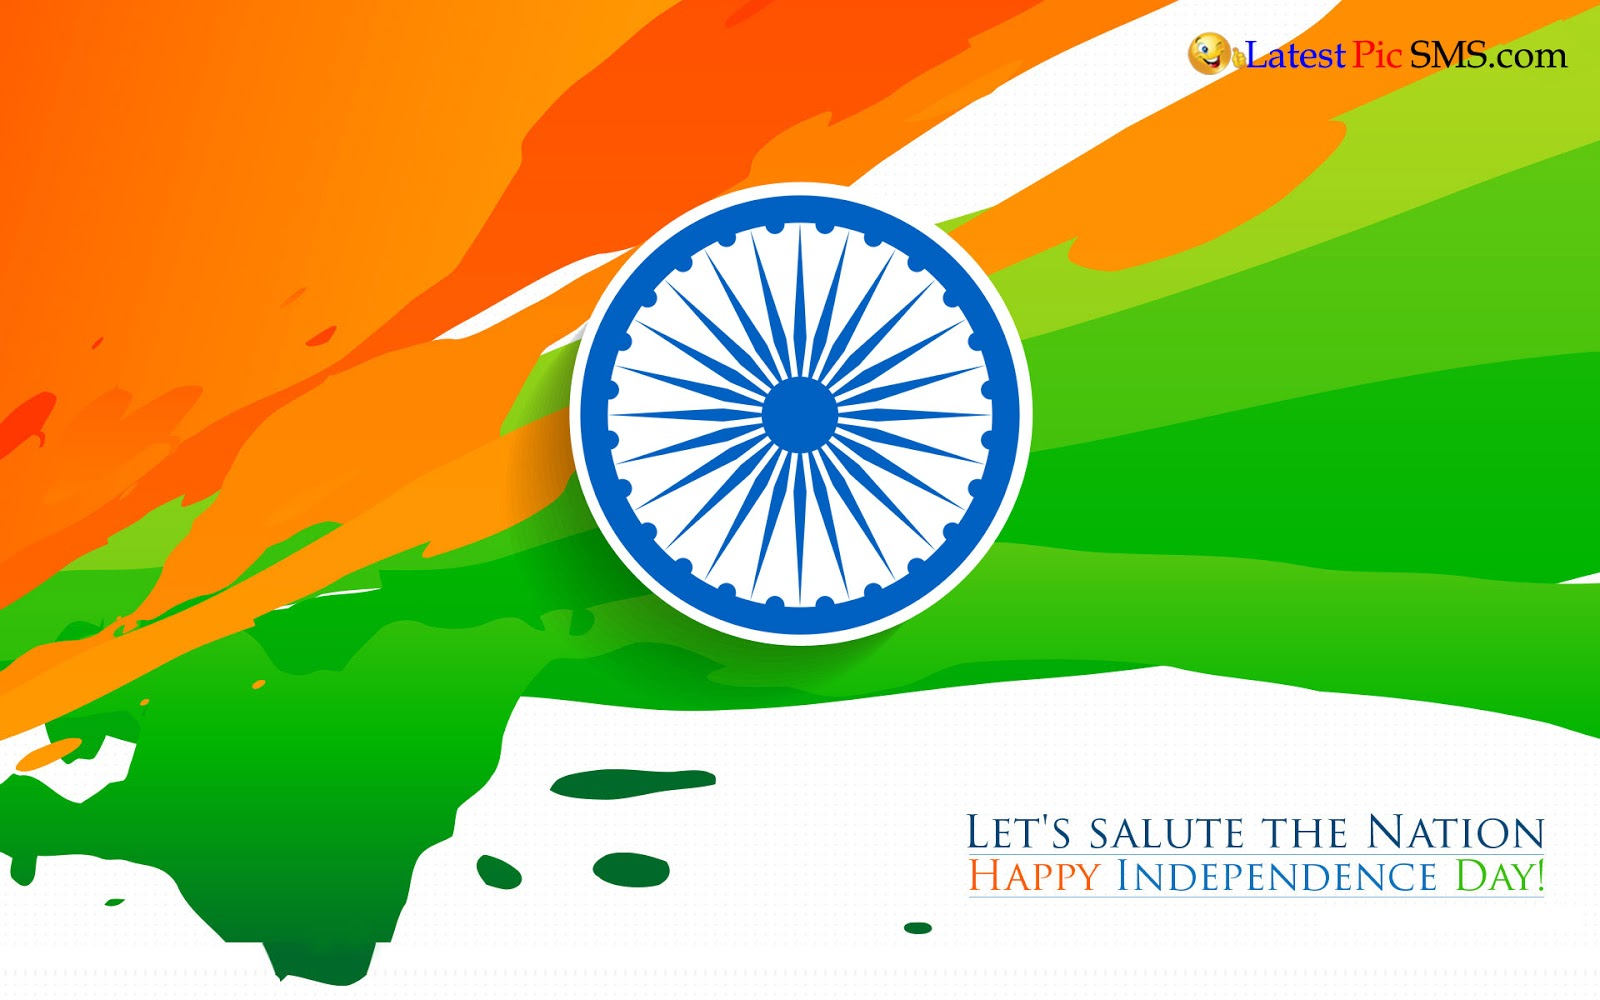 Happy Independence Day 15th August HD Wallpapers whtsapp - 15 August Indian Independence Day Full HD Images Wallpapers for fb